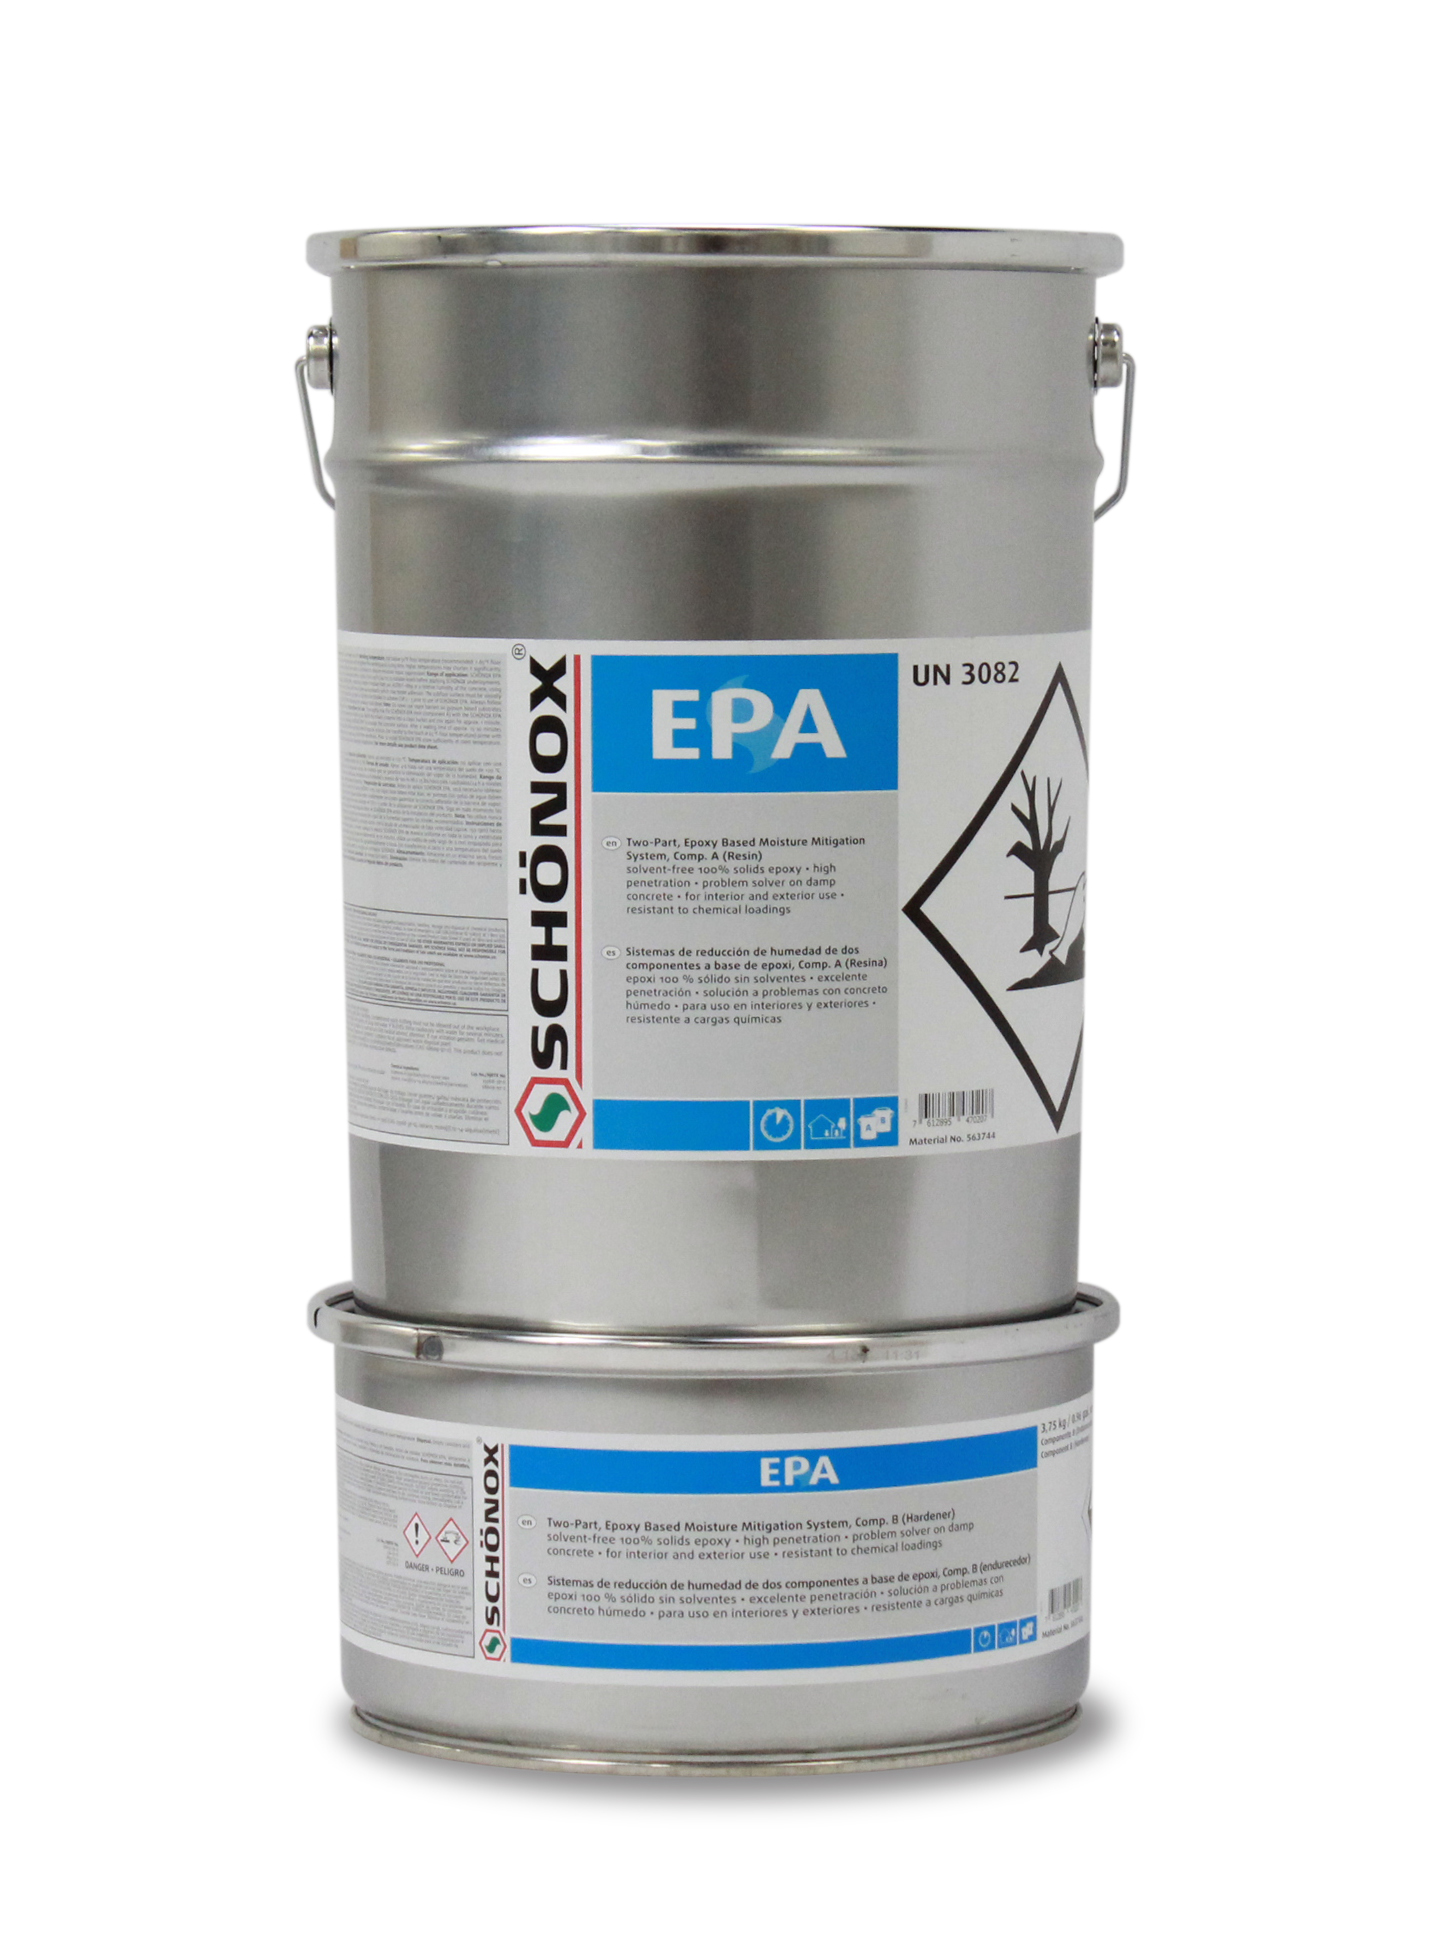 Image of EPA Product Bucket